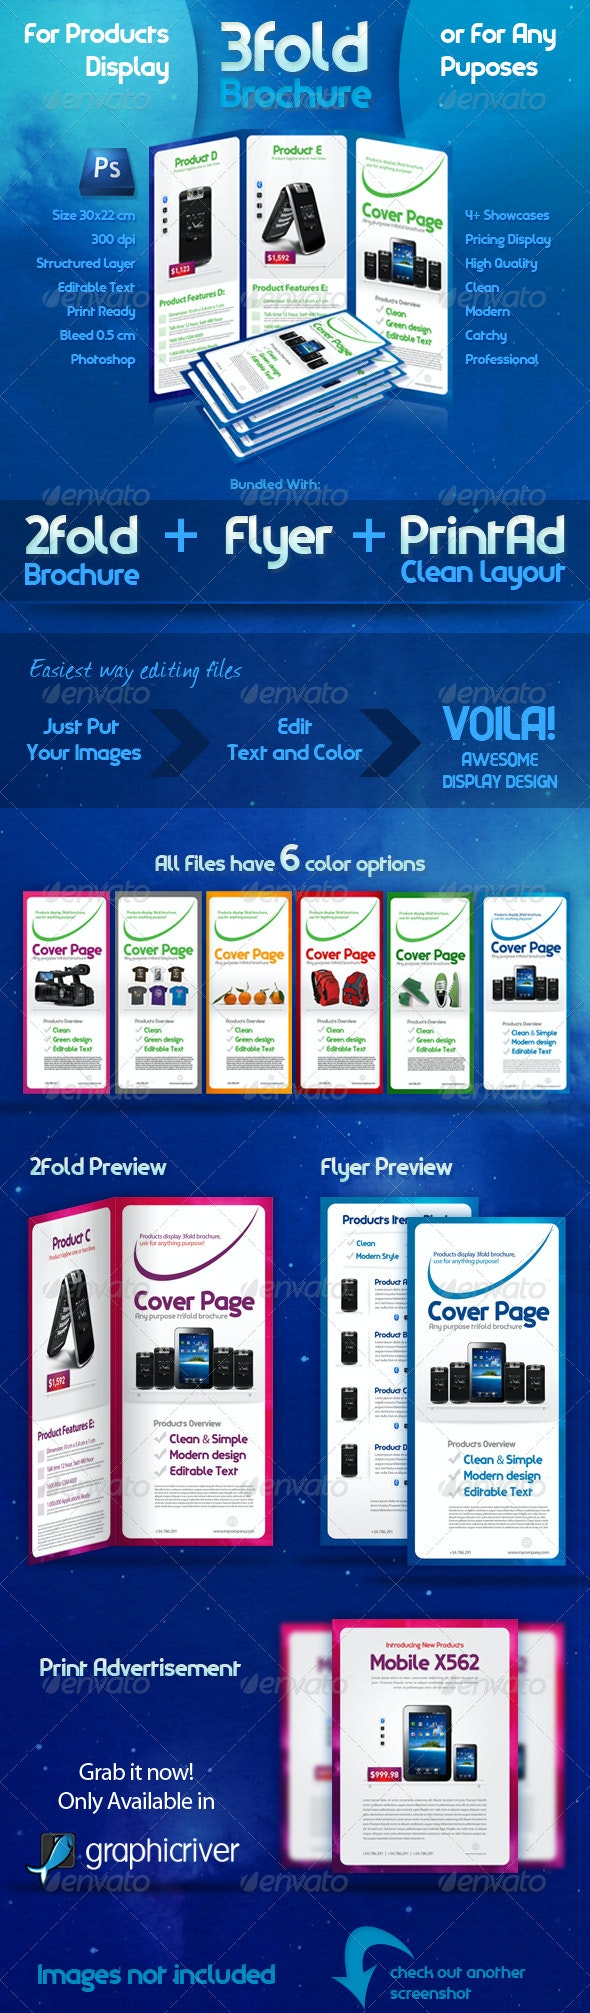 3 Fold Brochure Template with 6 Color Variations - Corporate Brochures